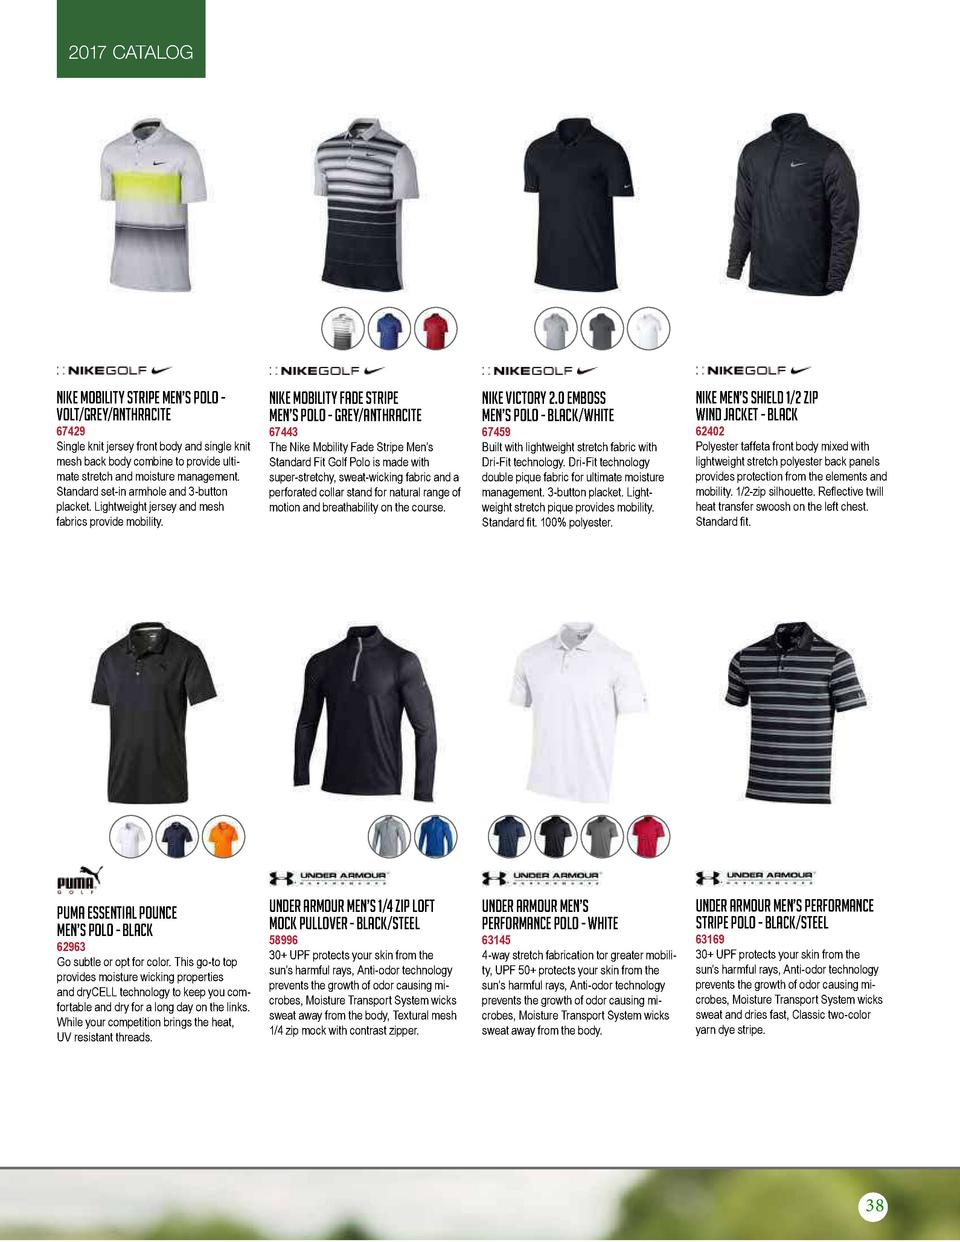 2017 CATALOG  Nike Mobility Stripe Men   s Polo Volt Grey Anthracite  Nike Mobility Fade Stripe Men   s Polo - Grey Anthra...